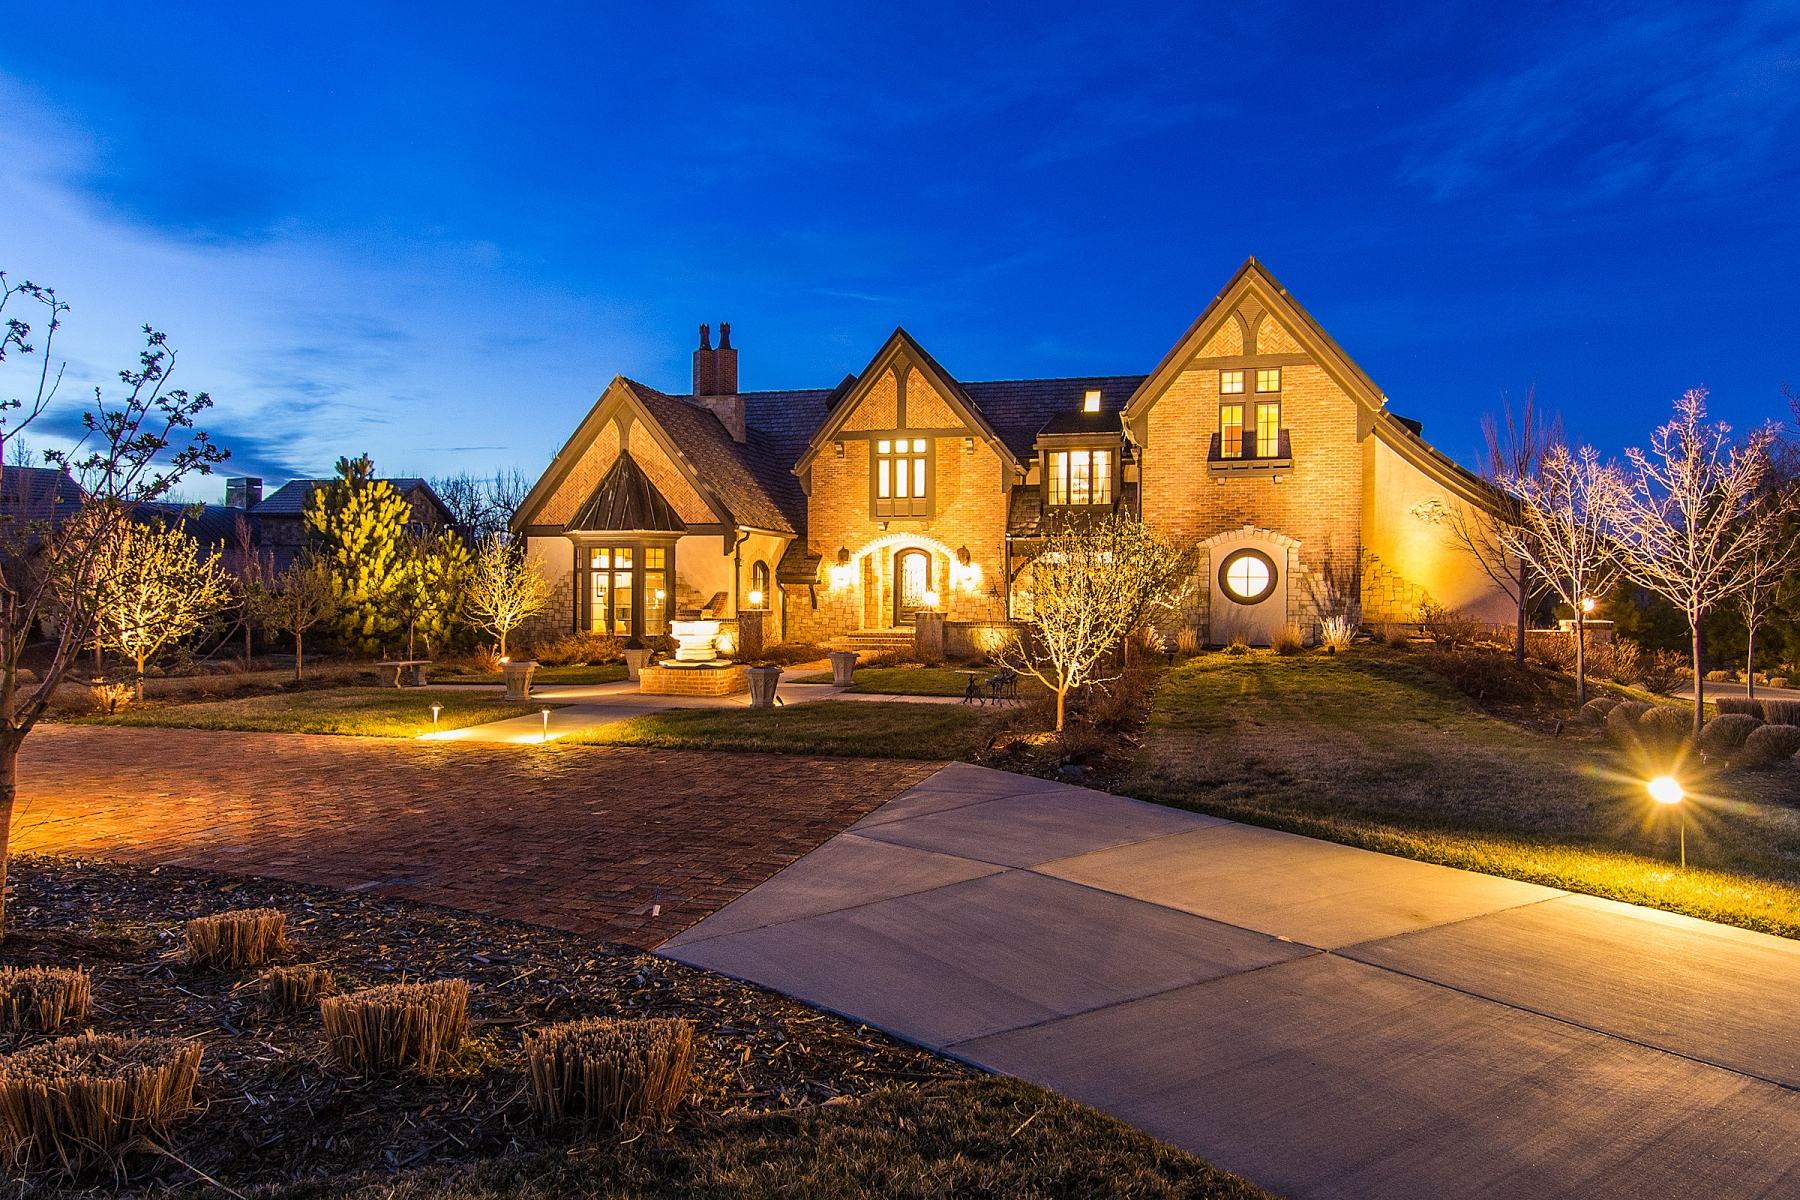 Single Family Home for Active at Magnificent English Tudor with brilliant architecture backing to Highline Canal 4251 Preserve Parkway Greenwood Village, Colorado 80121 United States